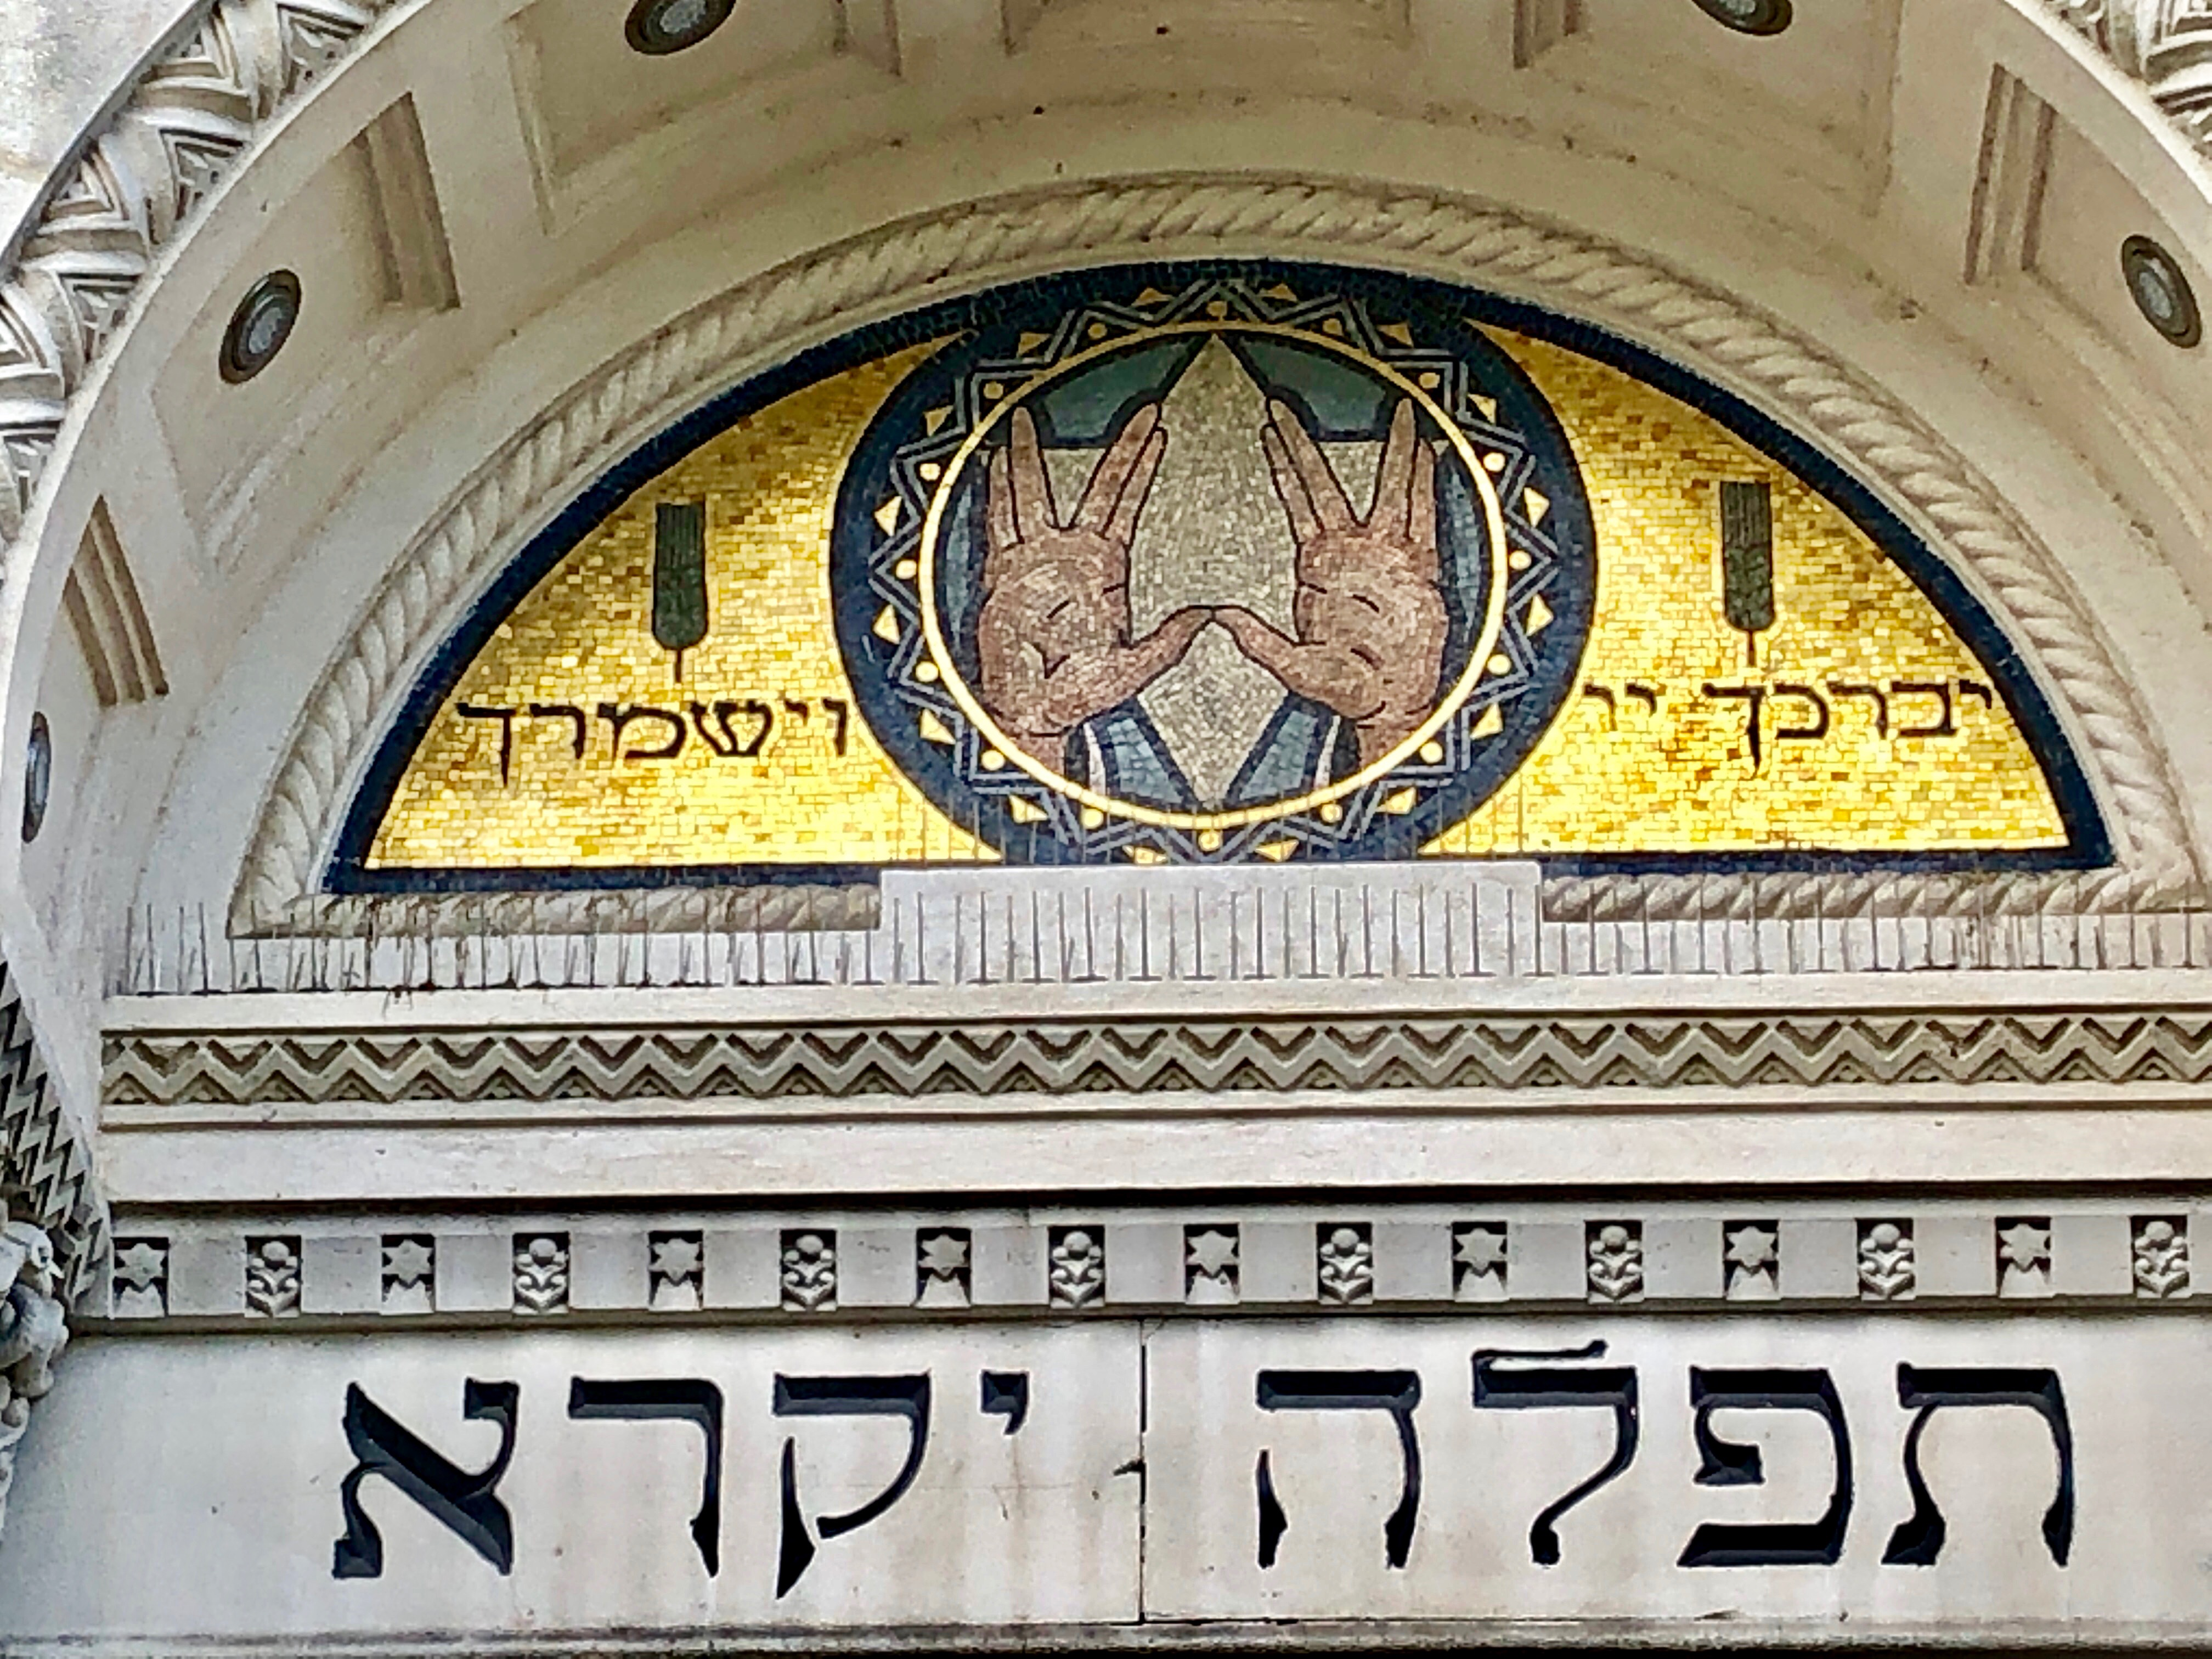 A pair of outstretched hands against a gold tile background above Hebrew letters.